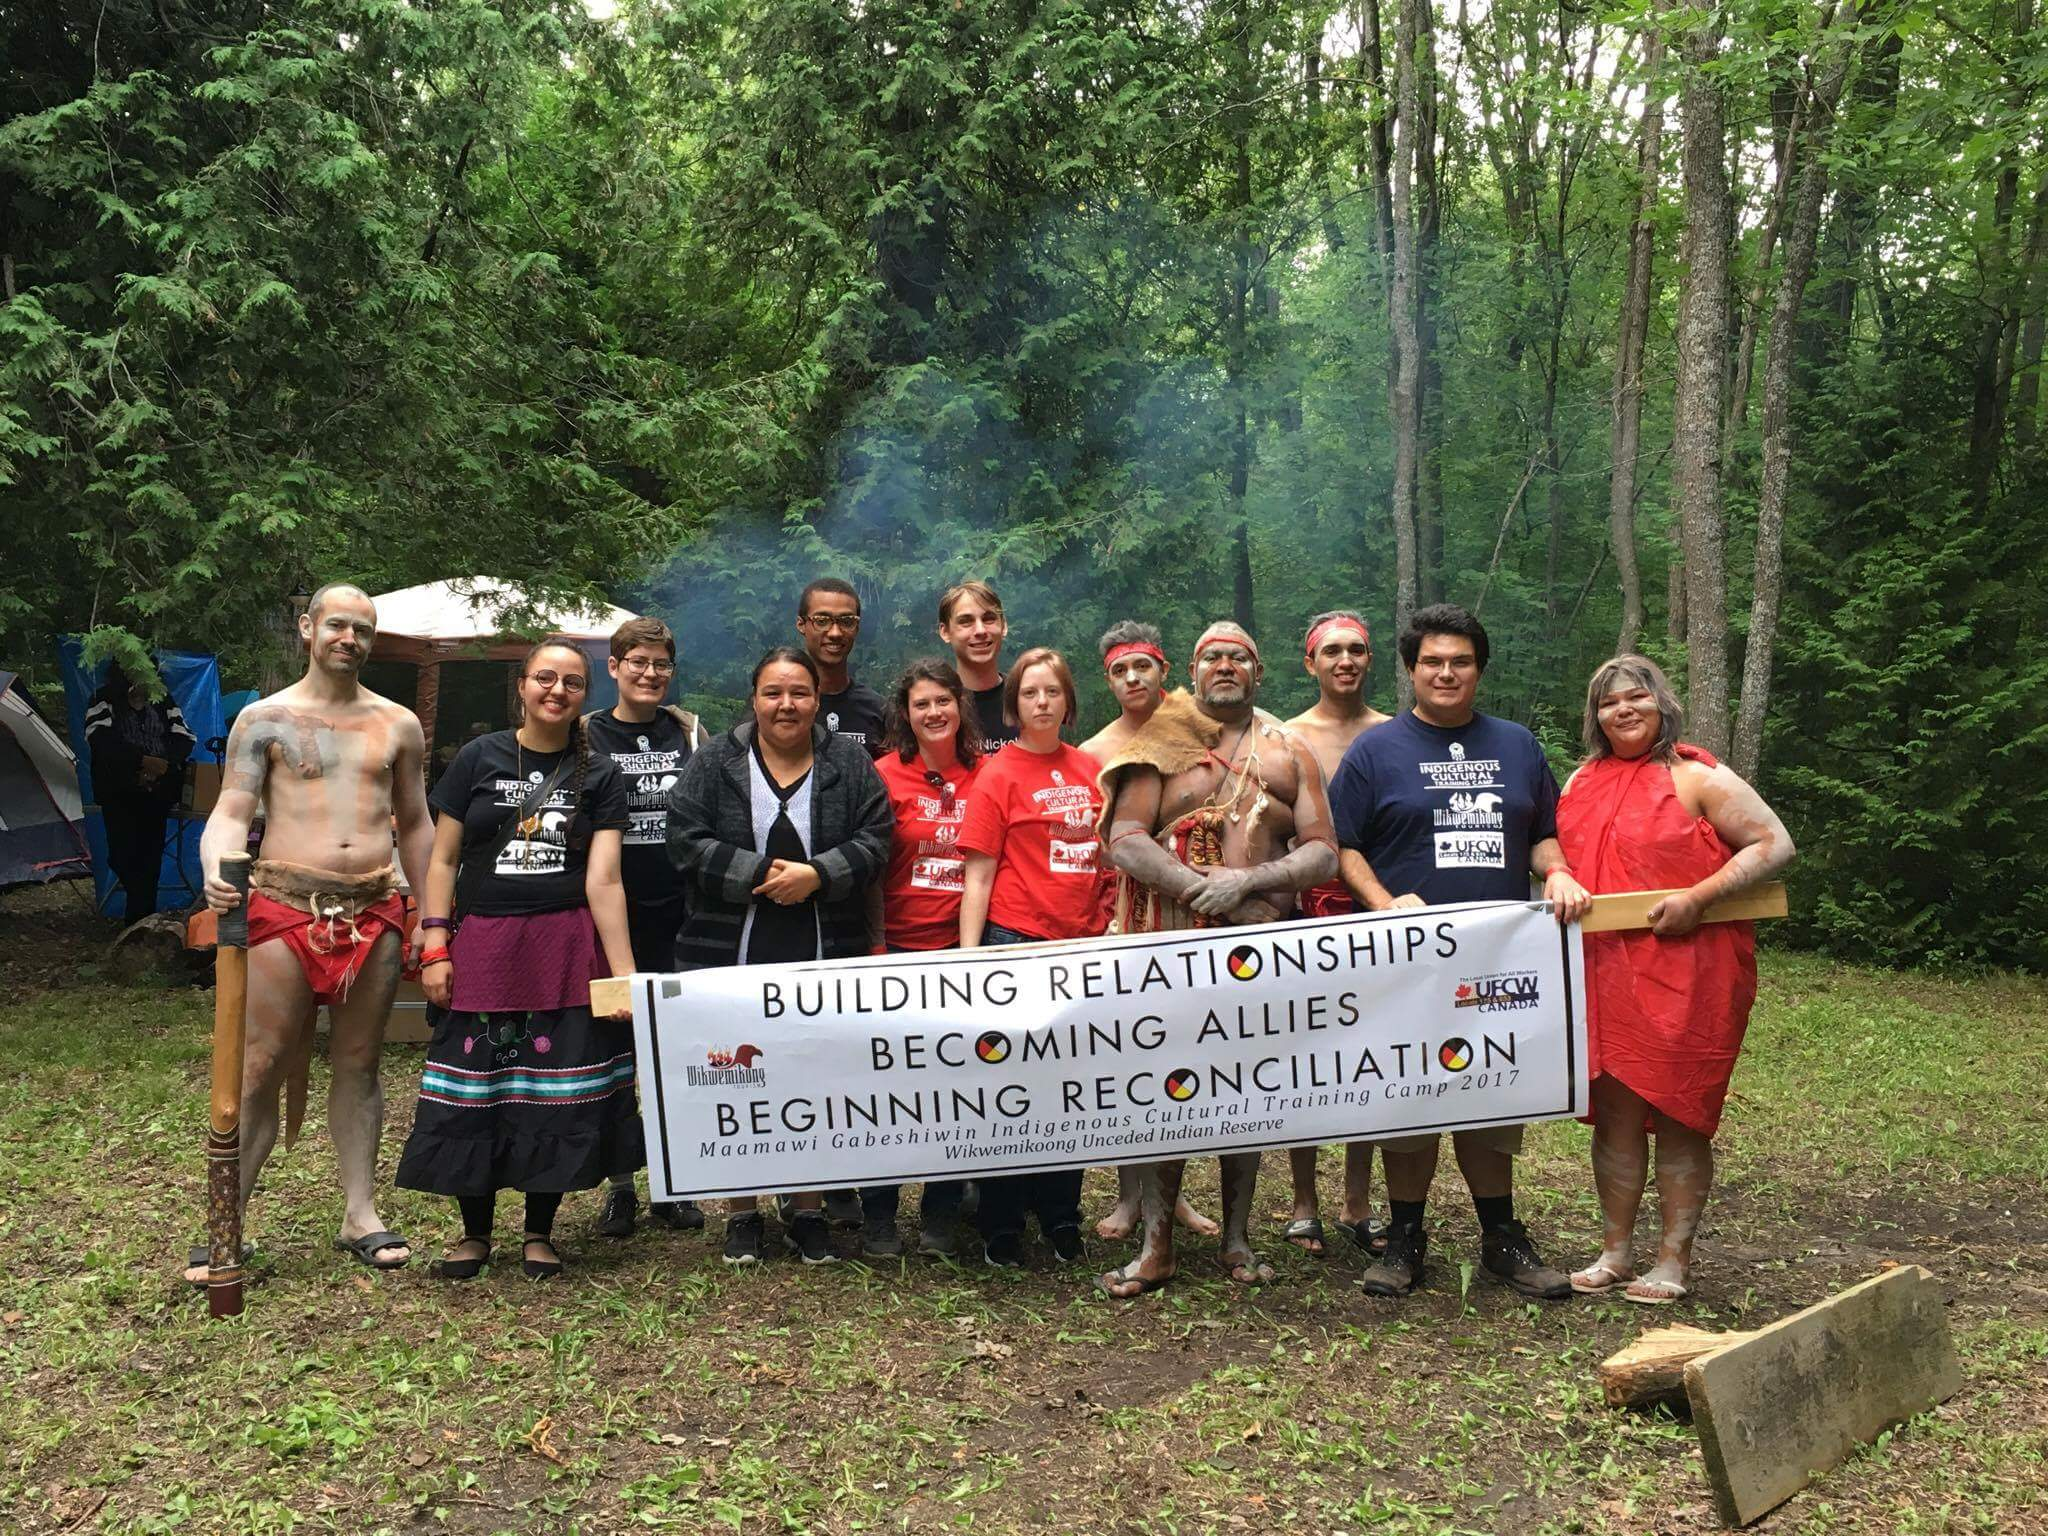 RECONNECTING WITH YOUR ROOTS AT CULTURAL TRAINING CAMP